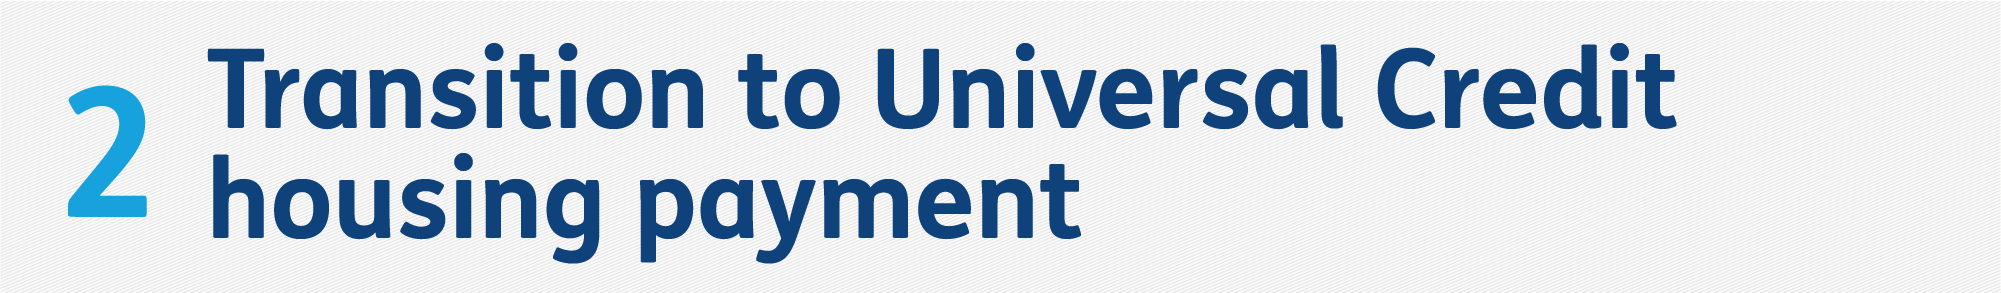 2. Transition to Universal Credit Housing payment